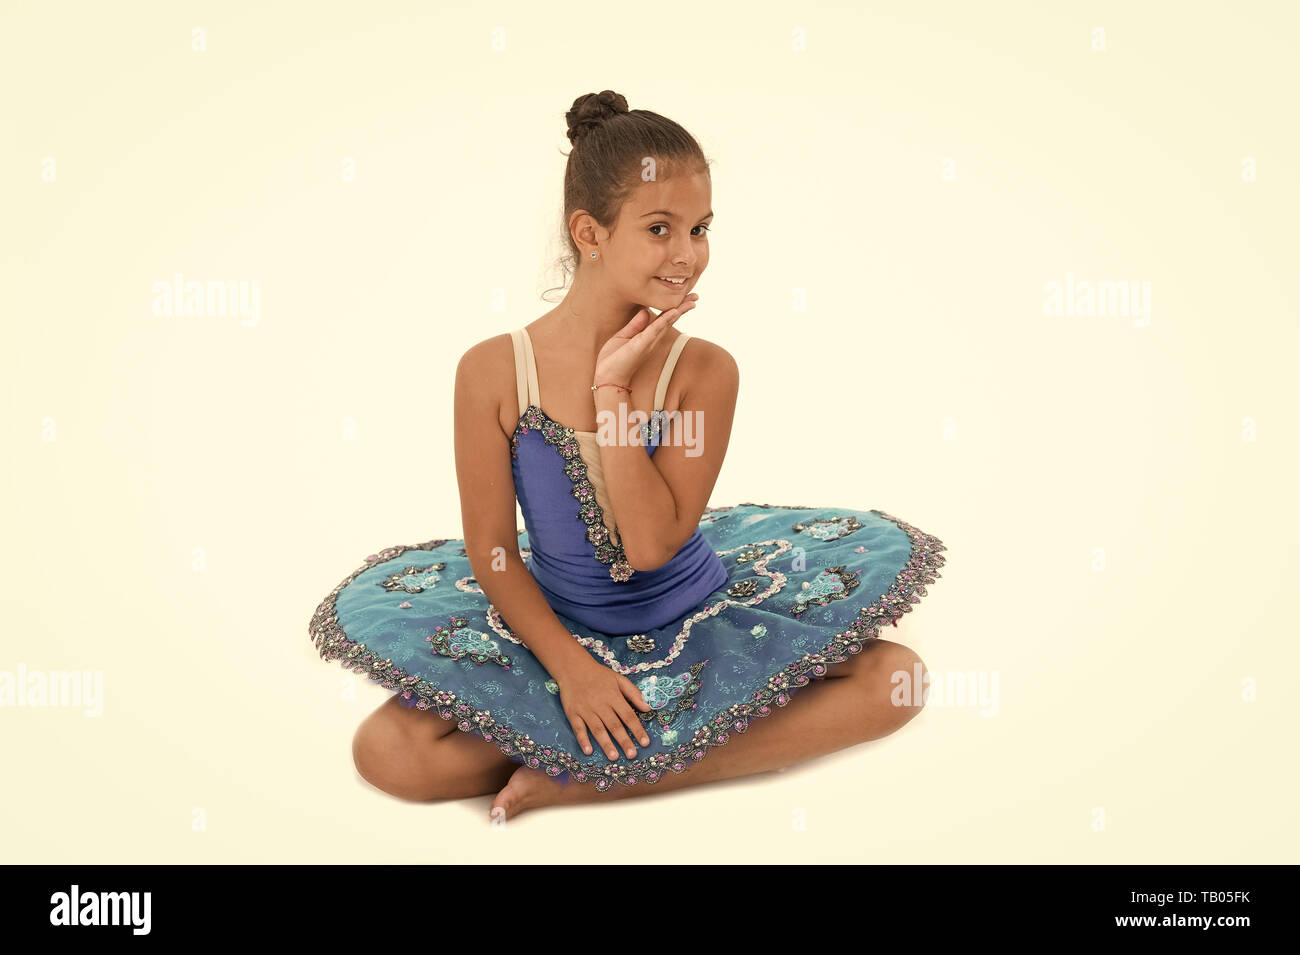 9976dc543263f Kid blue dress with ballet skirt white background isolated. Child flexible  pupil practice dancing.